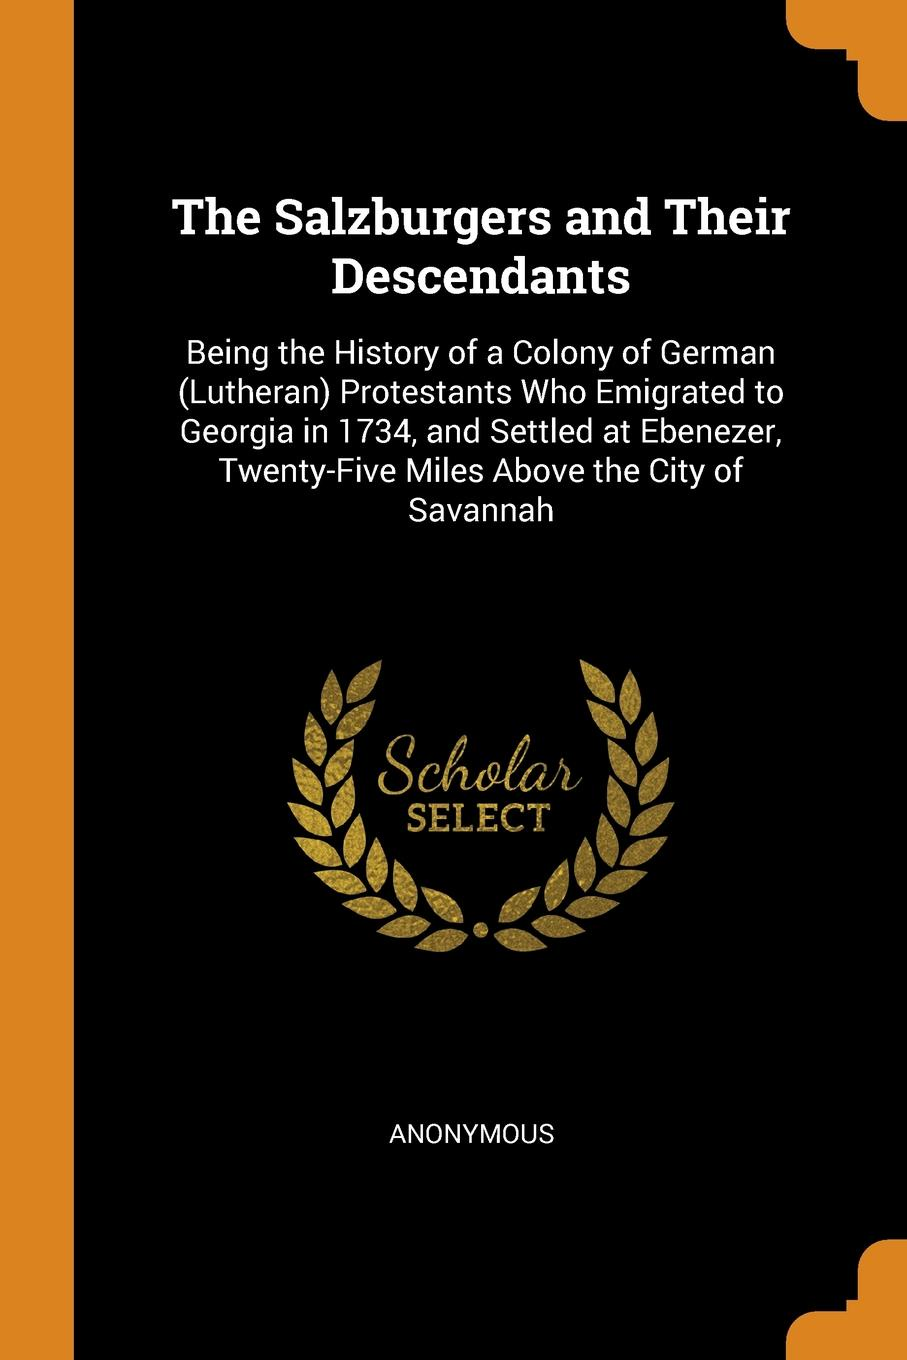 The Salzburgers and Their Descendants. Being the History of a Colony of German (Lutheran) Protestants Who Emigrated to Georgia in 1734, and Settled at Ebenezer, Twenty-Five Miles Above the City of Savannah. M. l`abb? Trochon